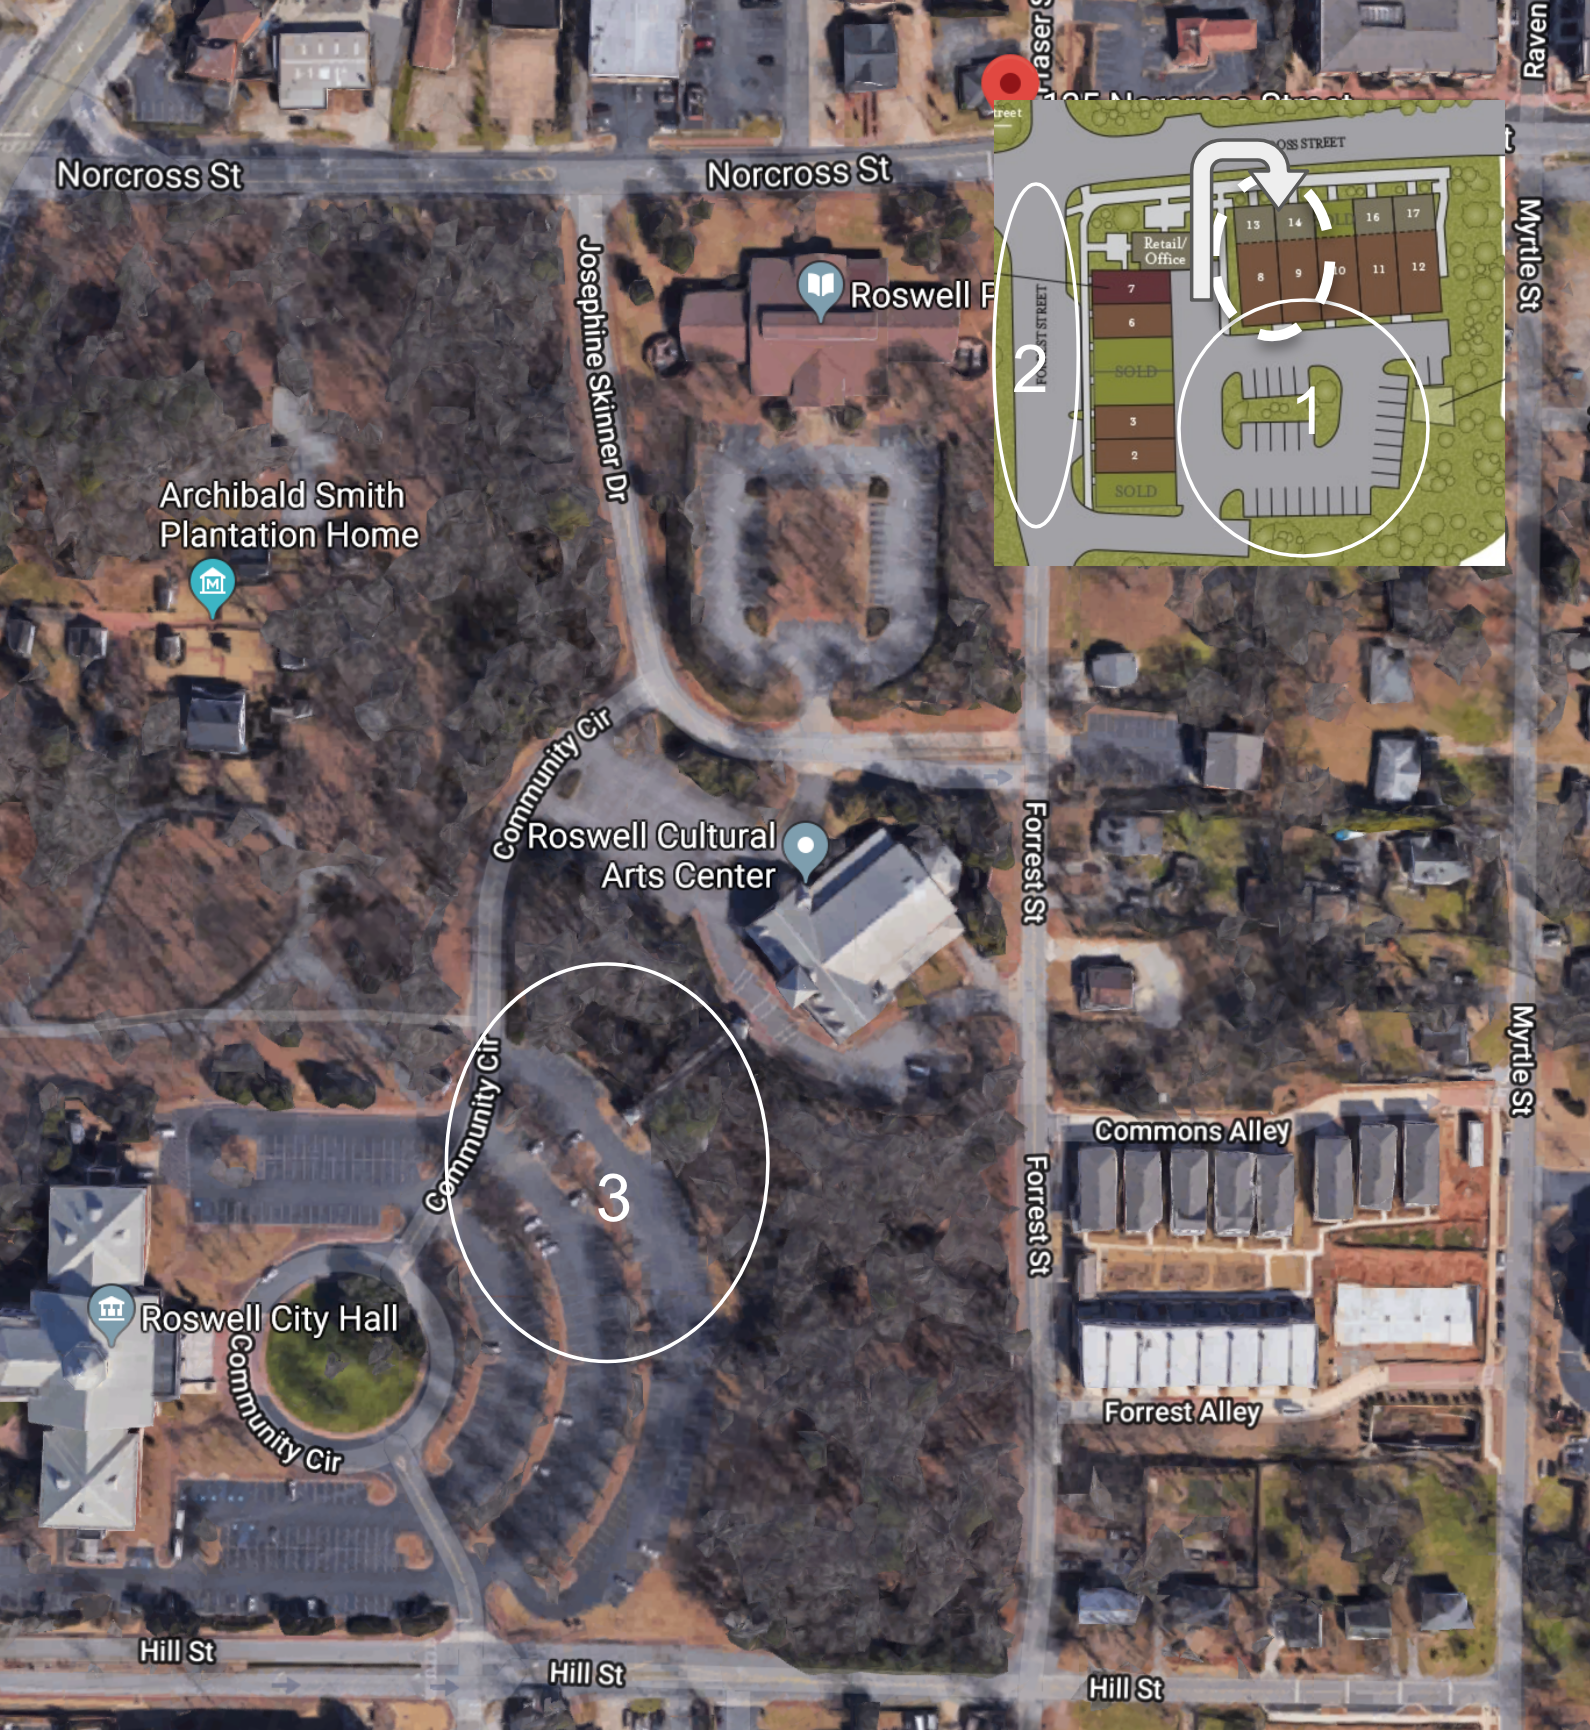 ***Parking options: 1. Immediately behind office, see arrow for walk through to front entrance. 2. Offstreet parking on Forrest Drive. 3. Public Parking at City Hall anytime or Library and Arts Center after hours. Take bridge towards arts center then office located next door to the Library.